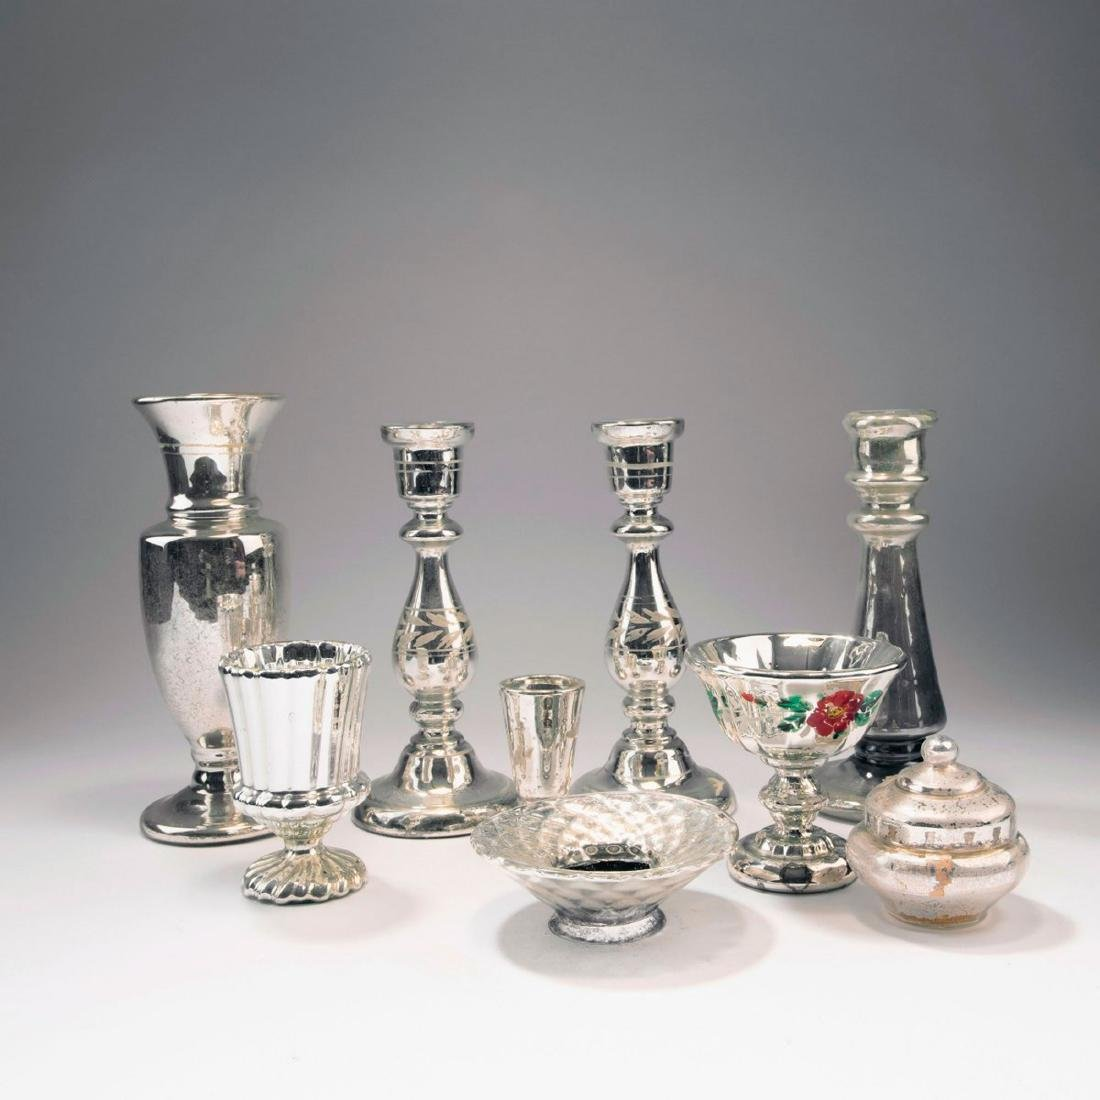 Mixed lot of silvered glass, 2nd half of the 19th